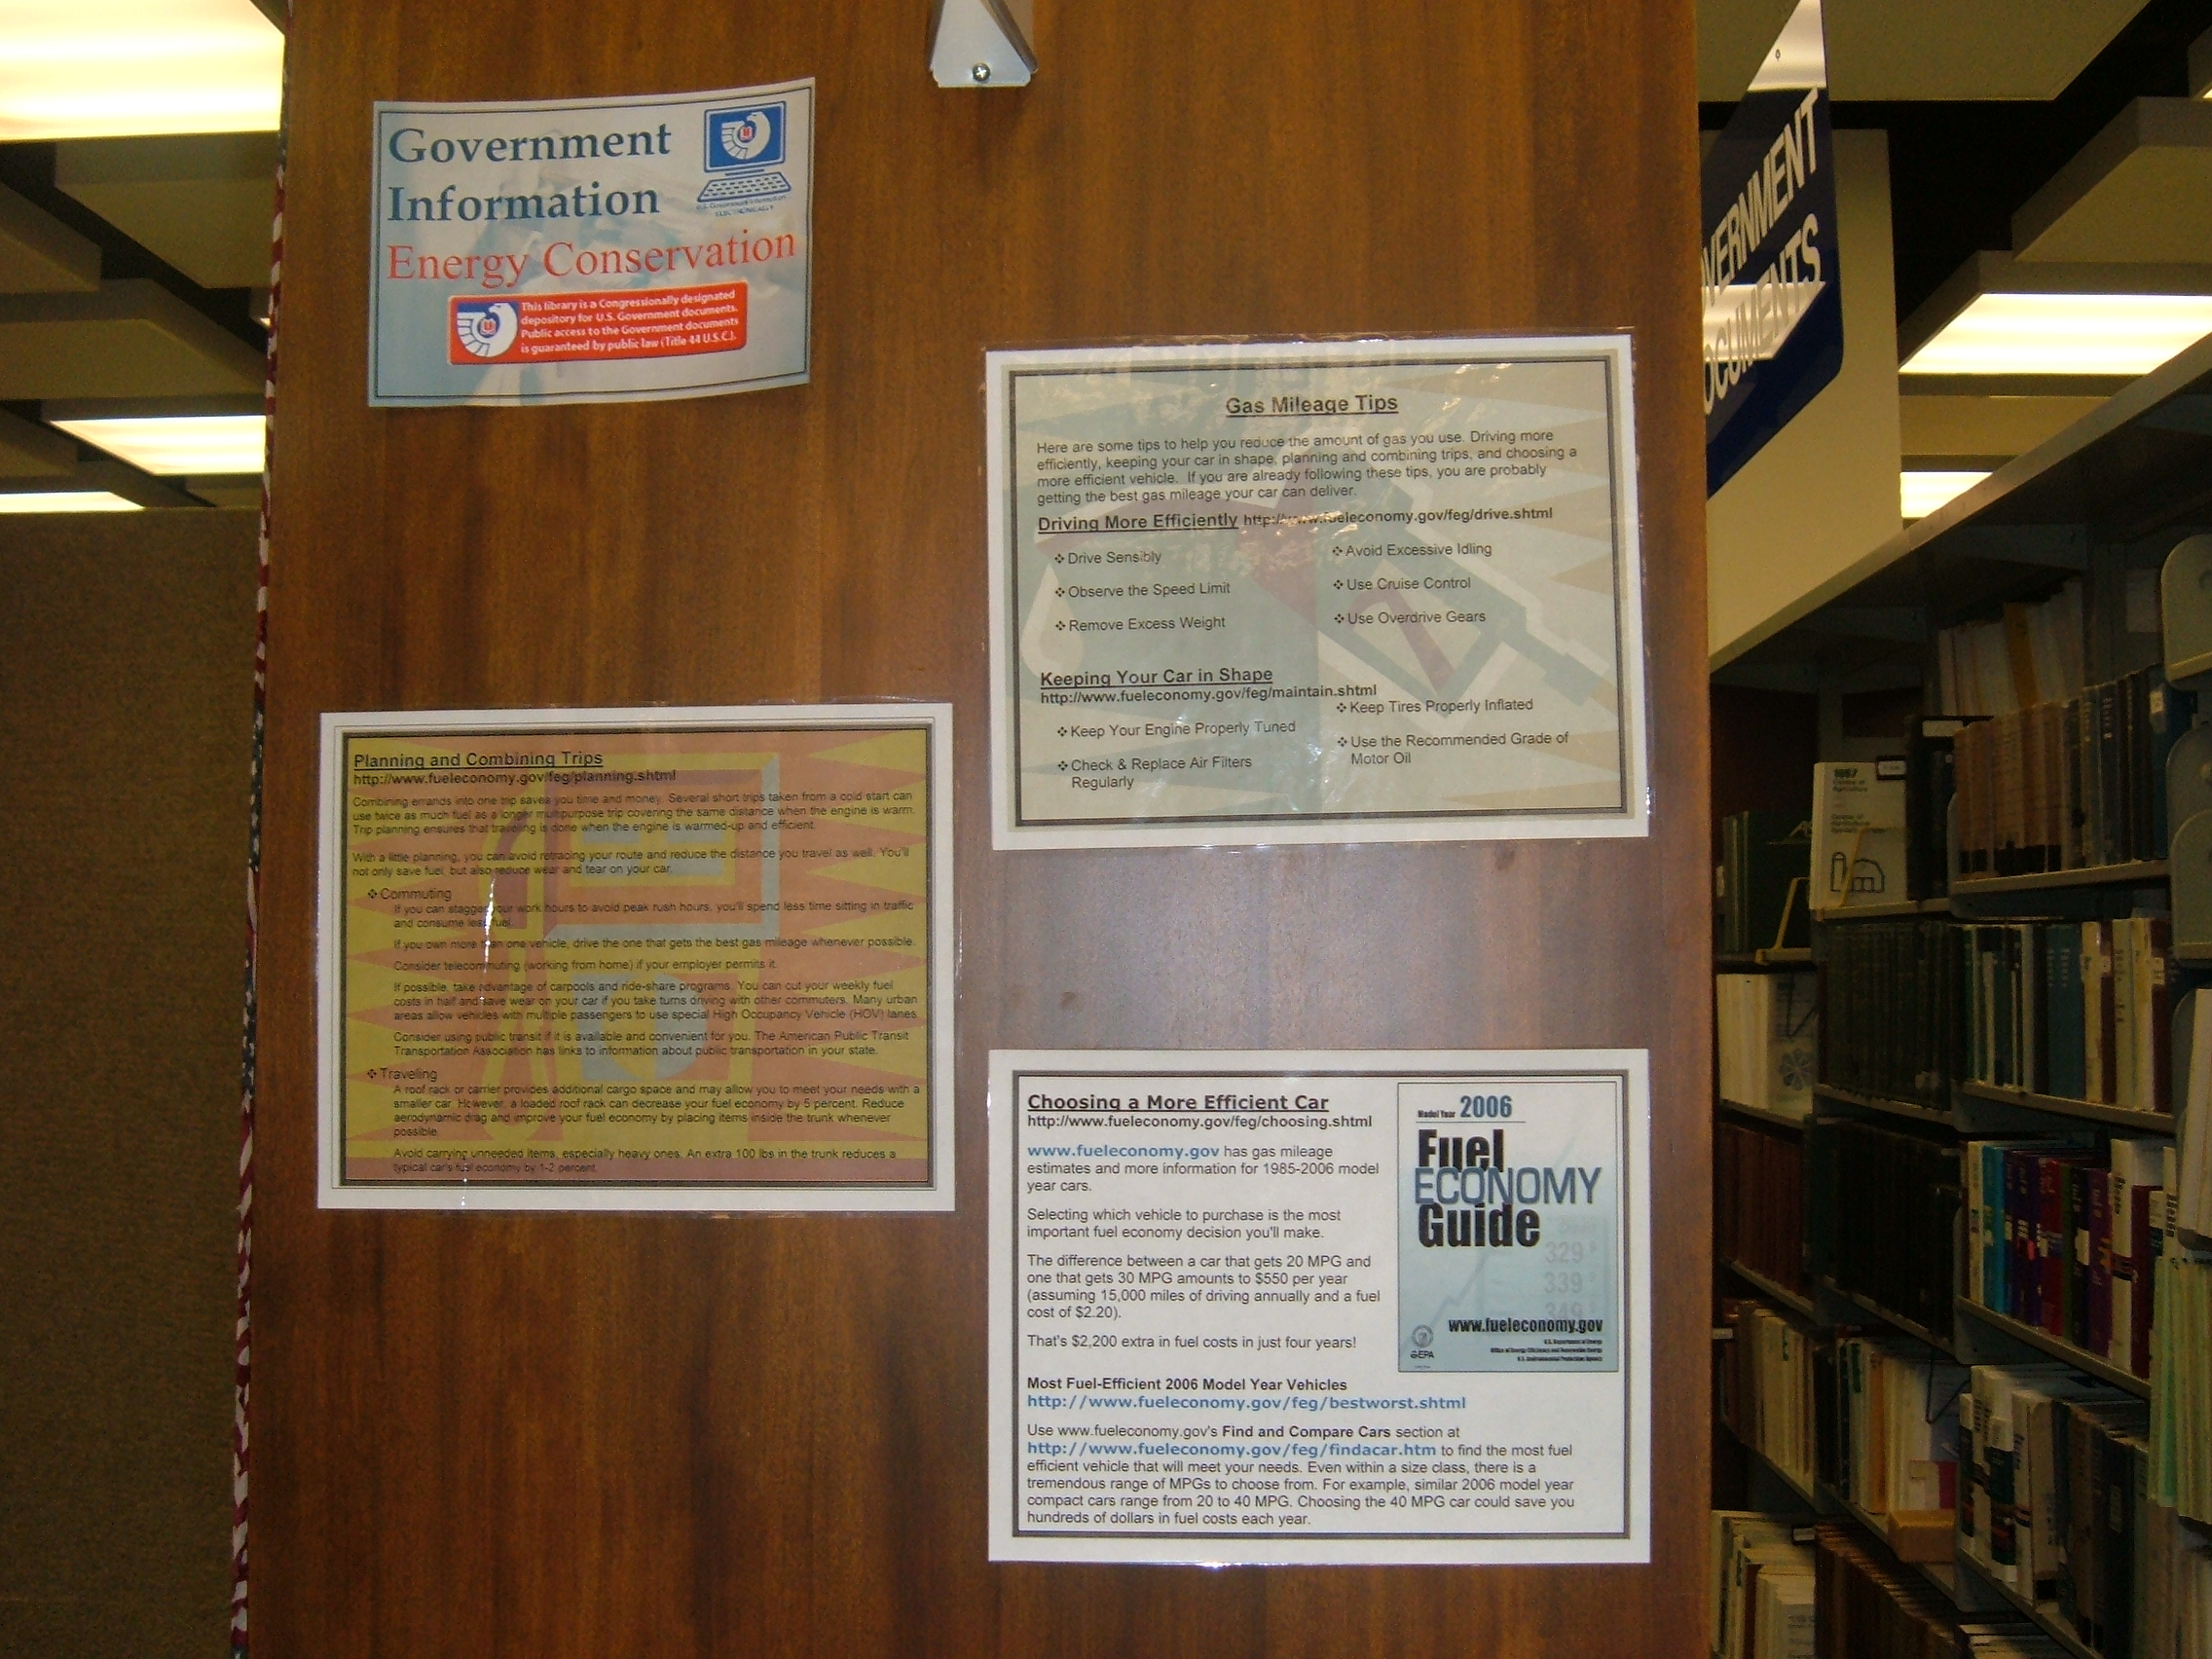 Energy Conservation Display